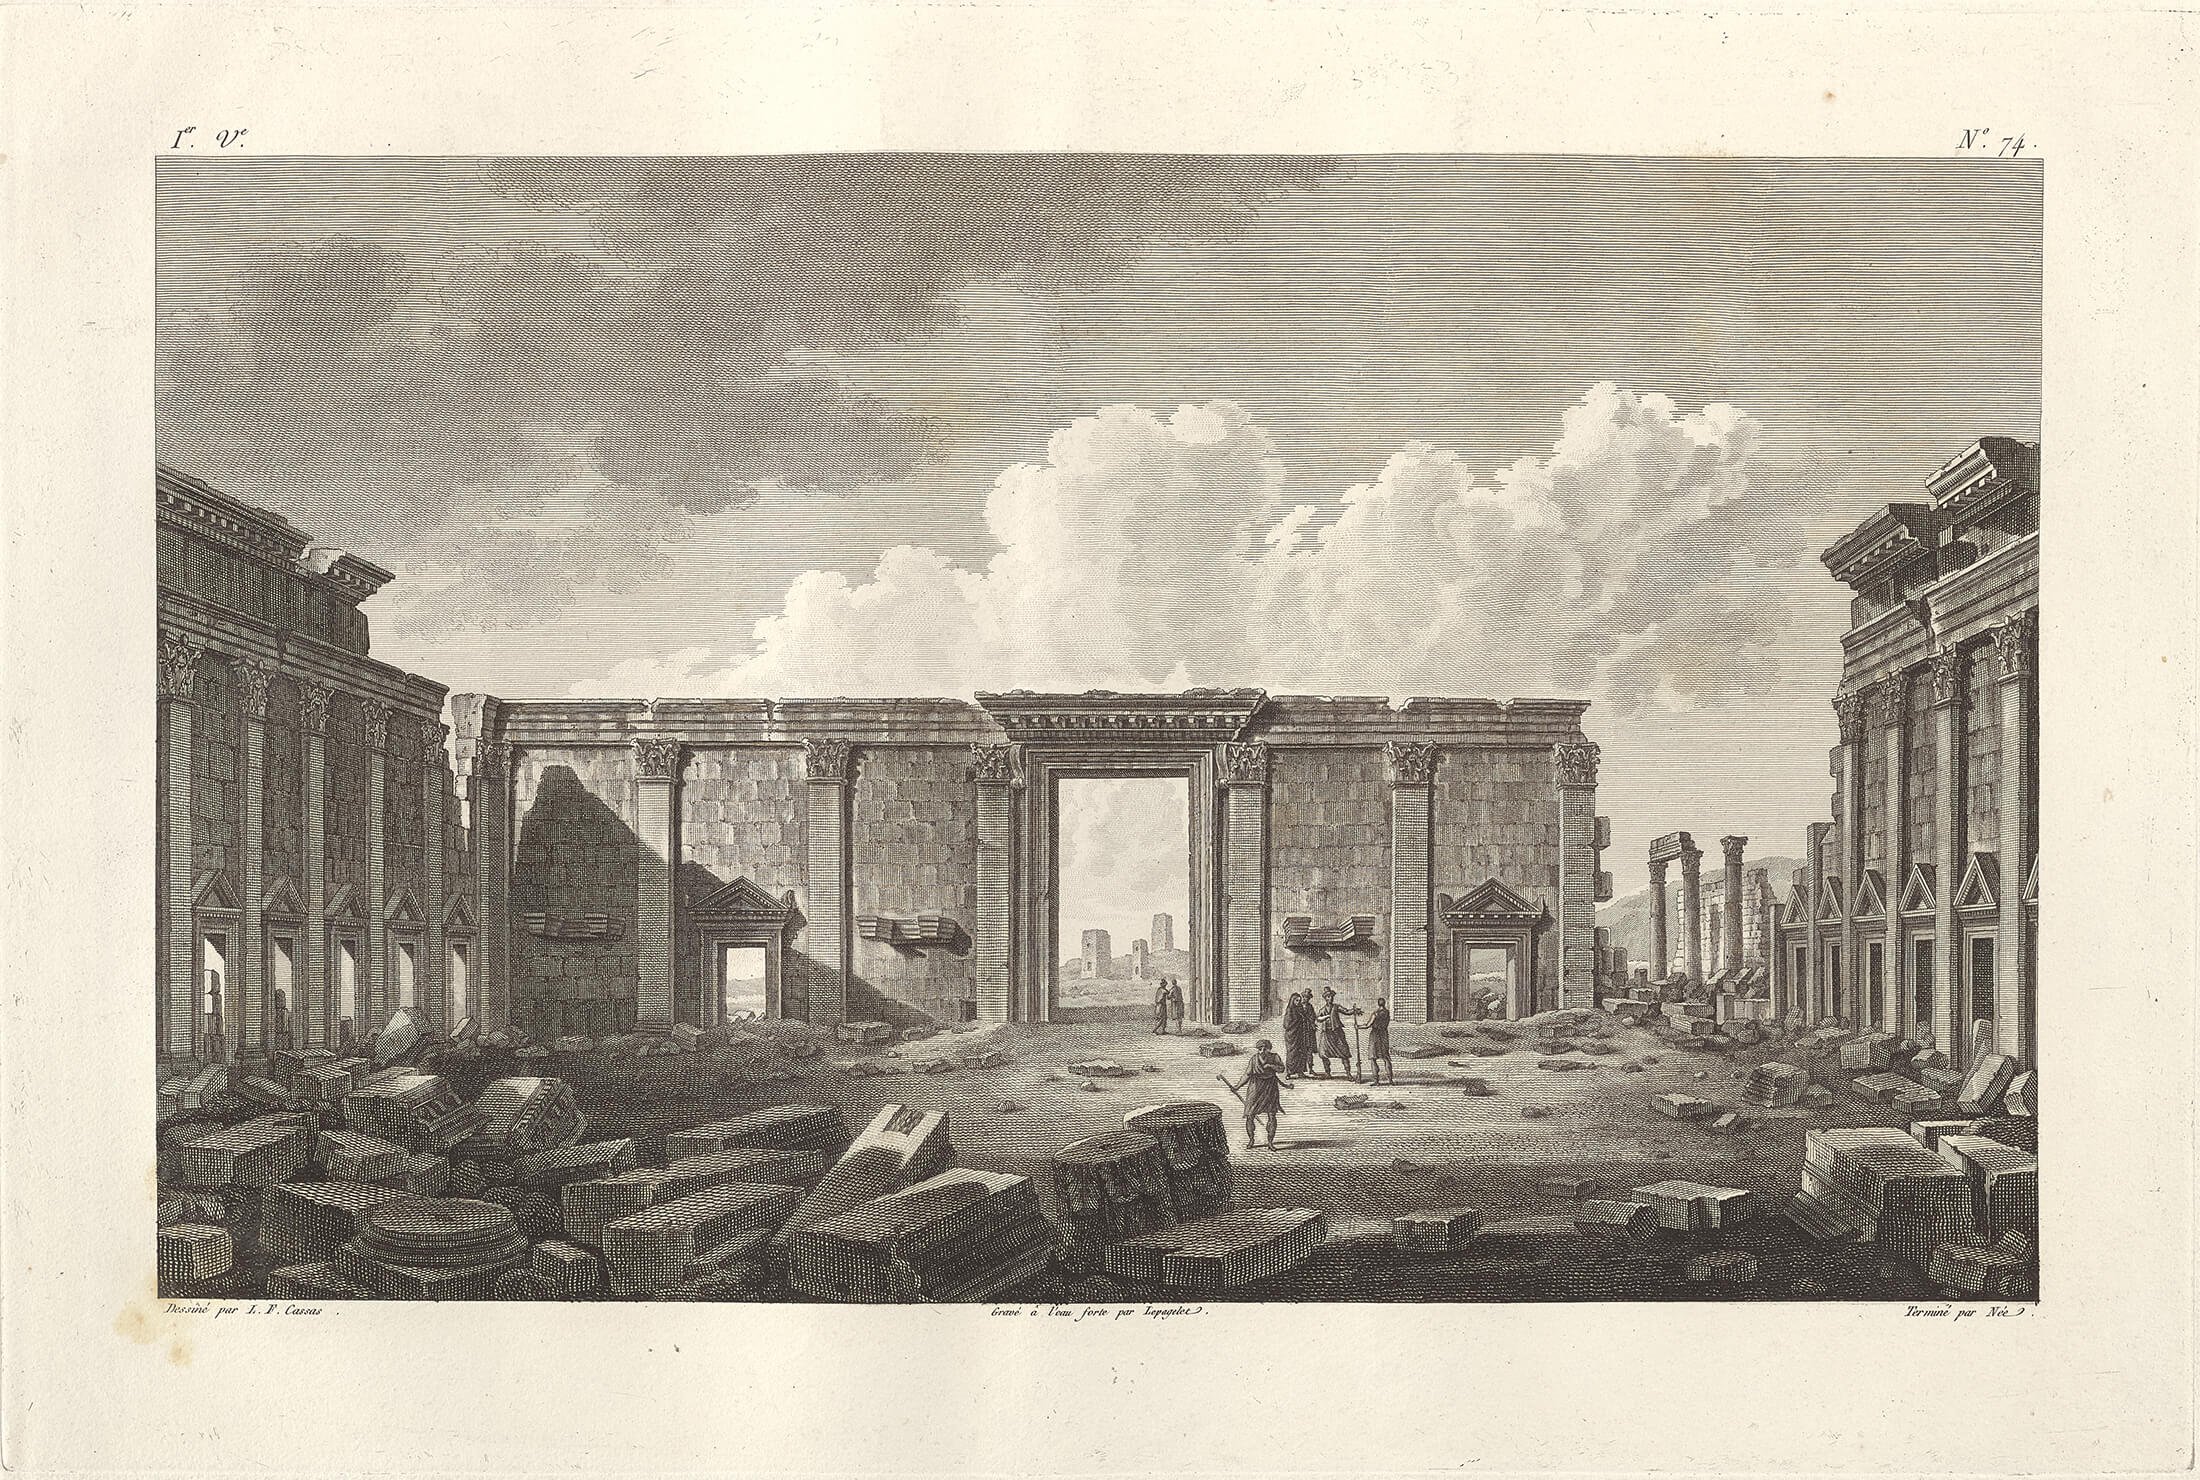 Zenobia's Palace, Lepagelet and François-Denis Née after Louis-François Cassas. From 'Voyage pittoresque de la Syrie, de la Phoénicie, de la Palestine, et de la Basse Egypte' (Paris, ca. 1799). The Getty Research Institute